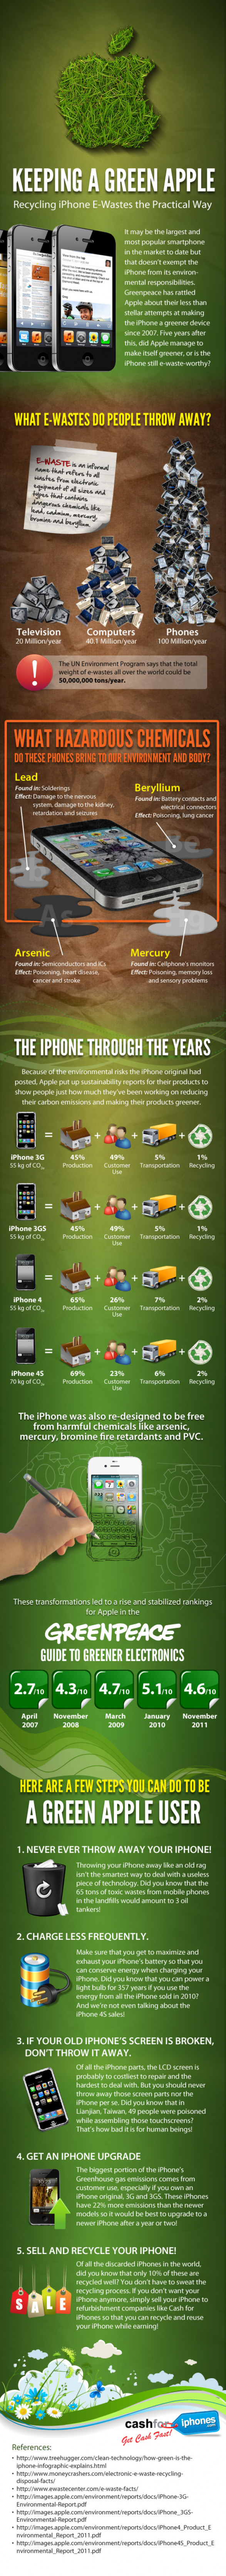 Recycling iPhone E-Wastes the Practical Way